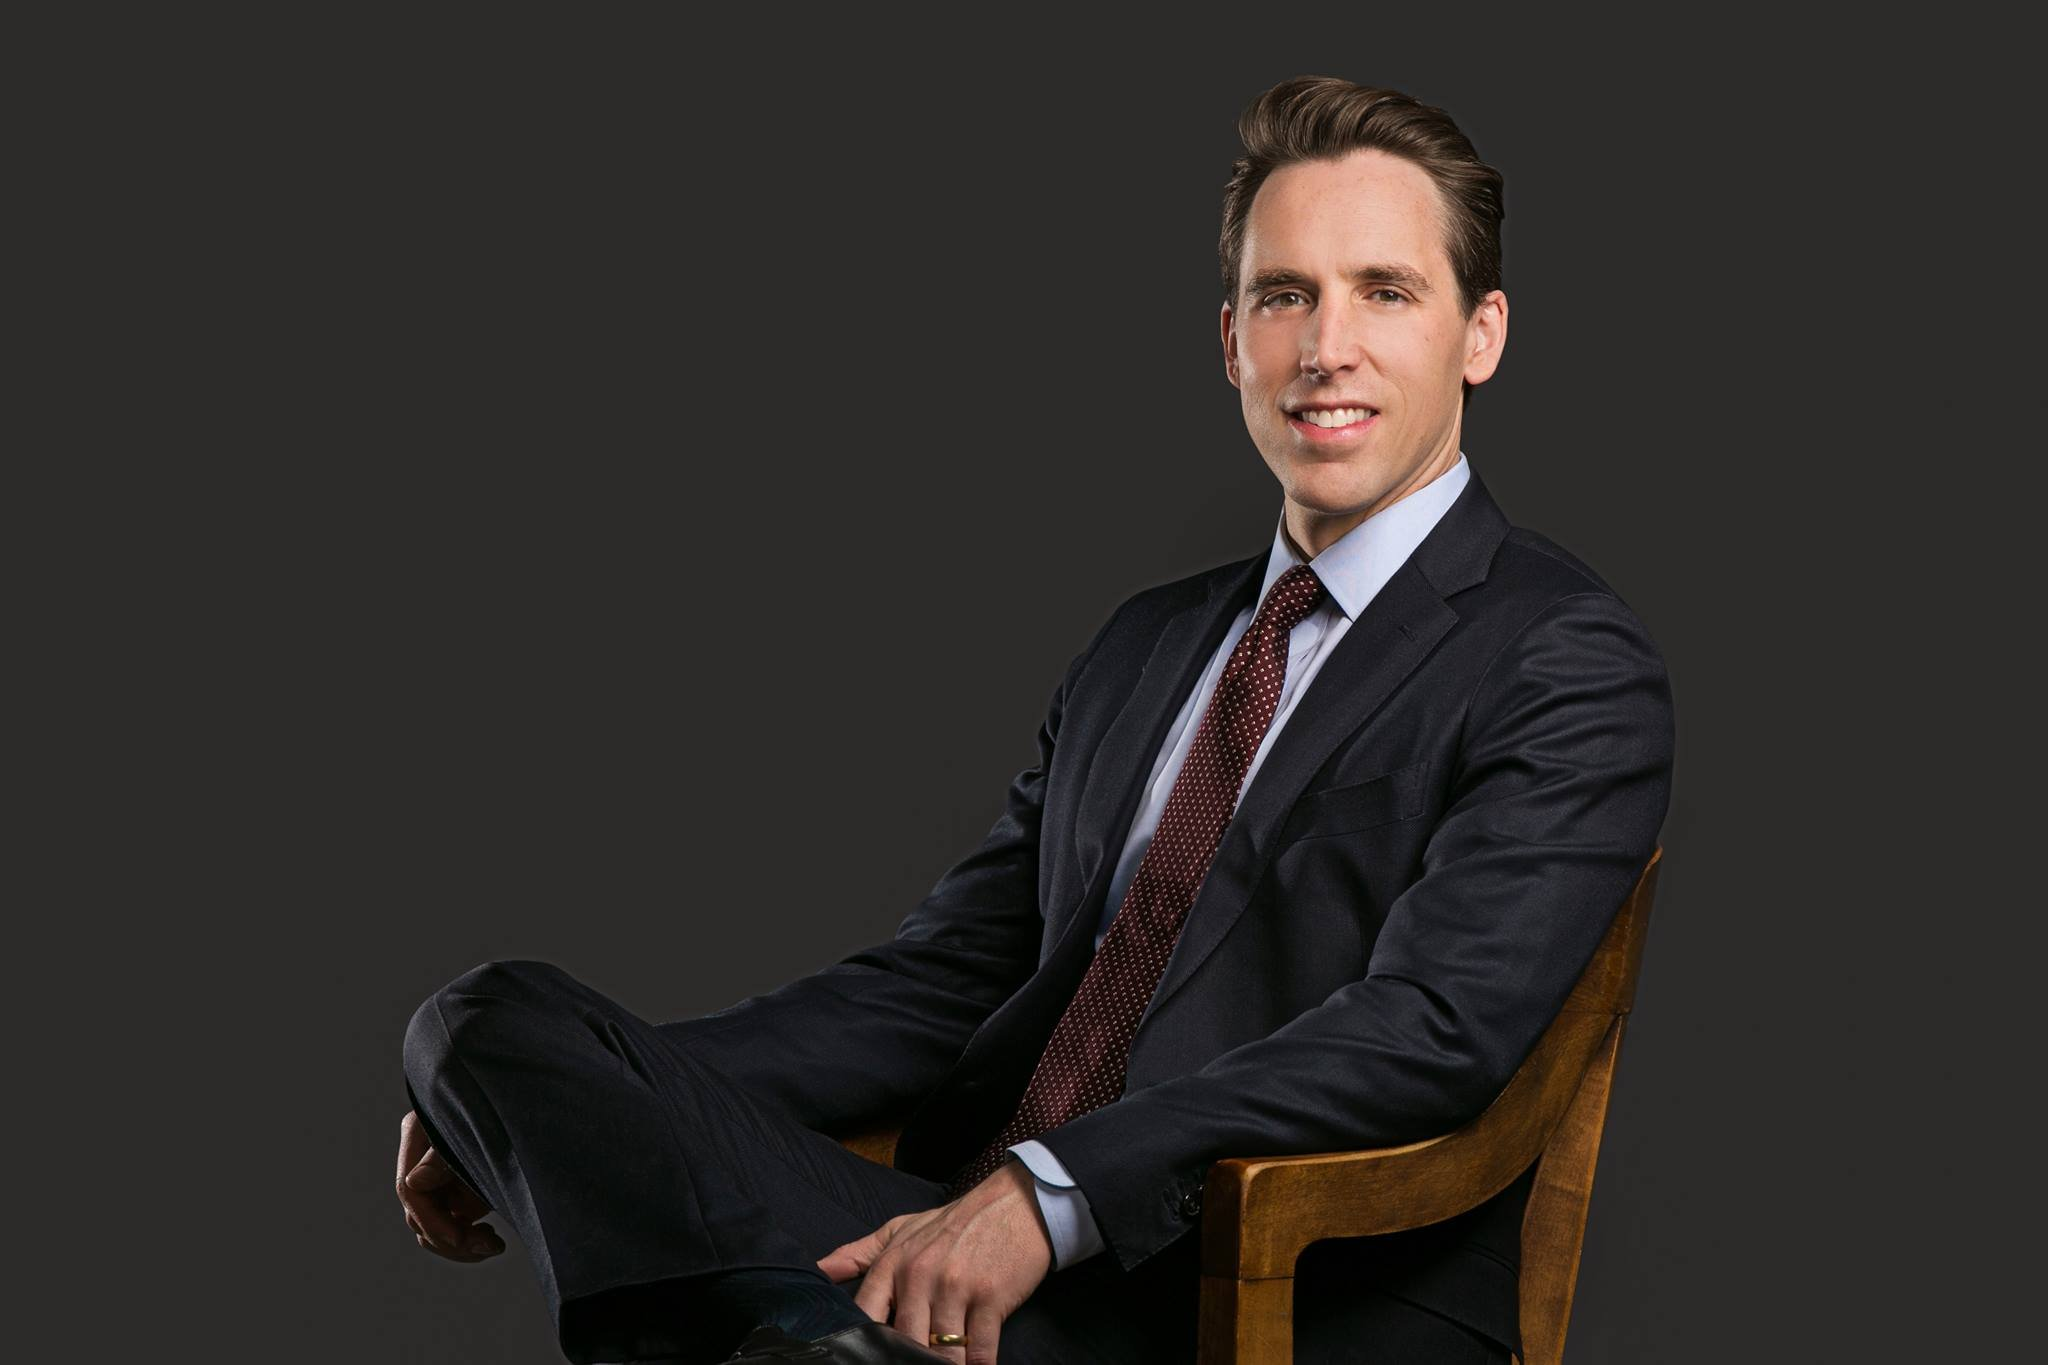 Republican lawyer and University of Missouri associate law professor Josh Hawley has been elected as the state's next attorney general. (Josh Hawley/Facebook)